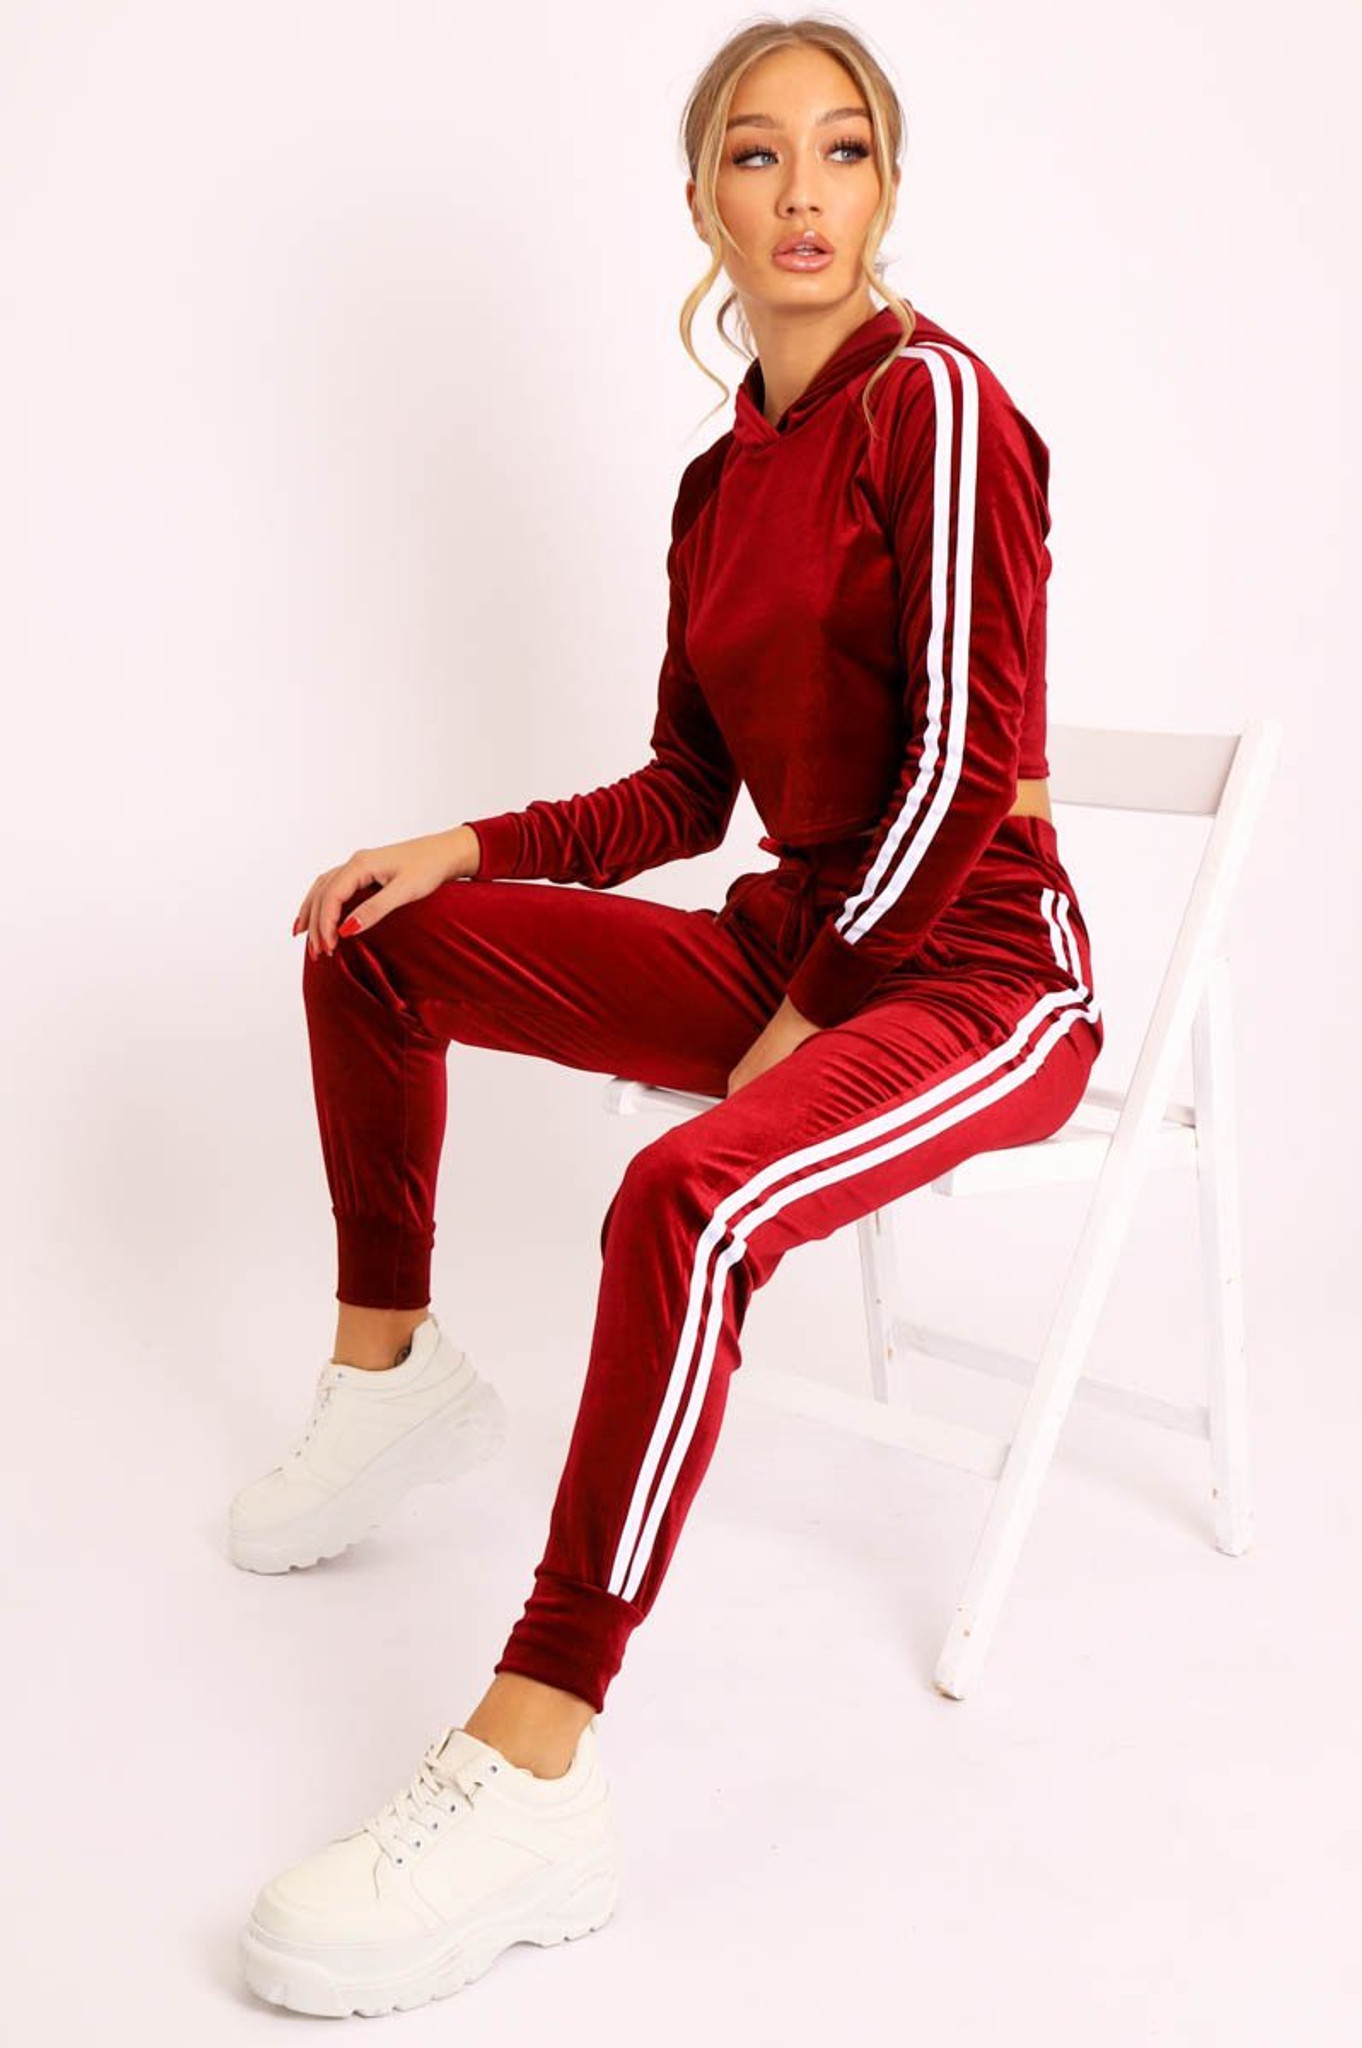 Fifth Avenue Womens Velvet Striped Hoodie and Jogger Pants Co- Ord Set FAVELC5 - Maroon